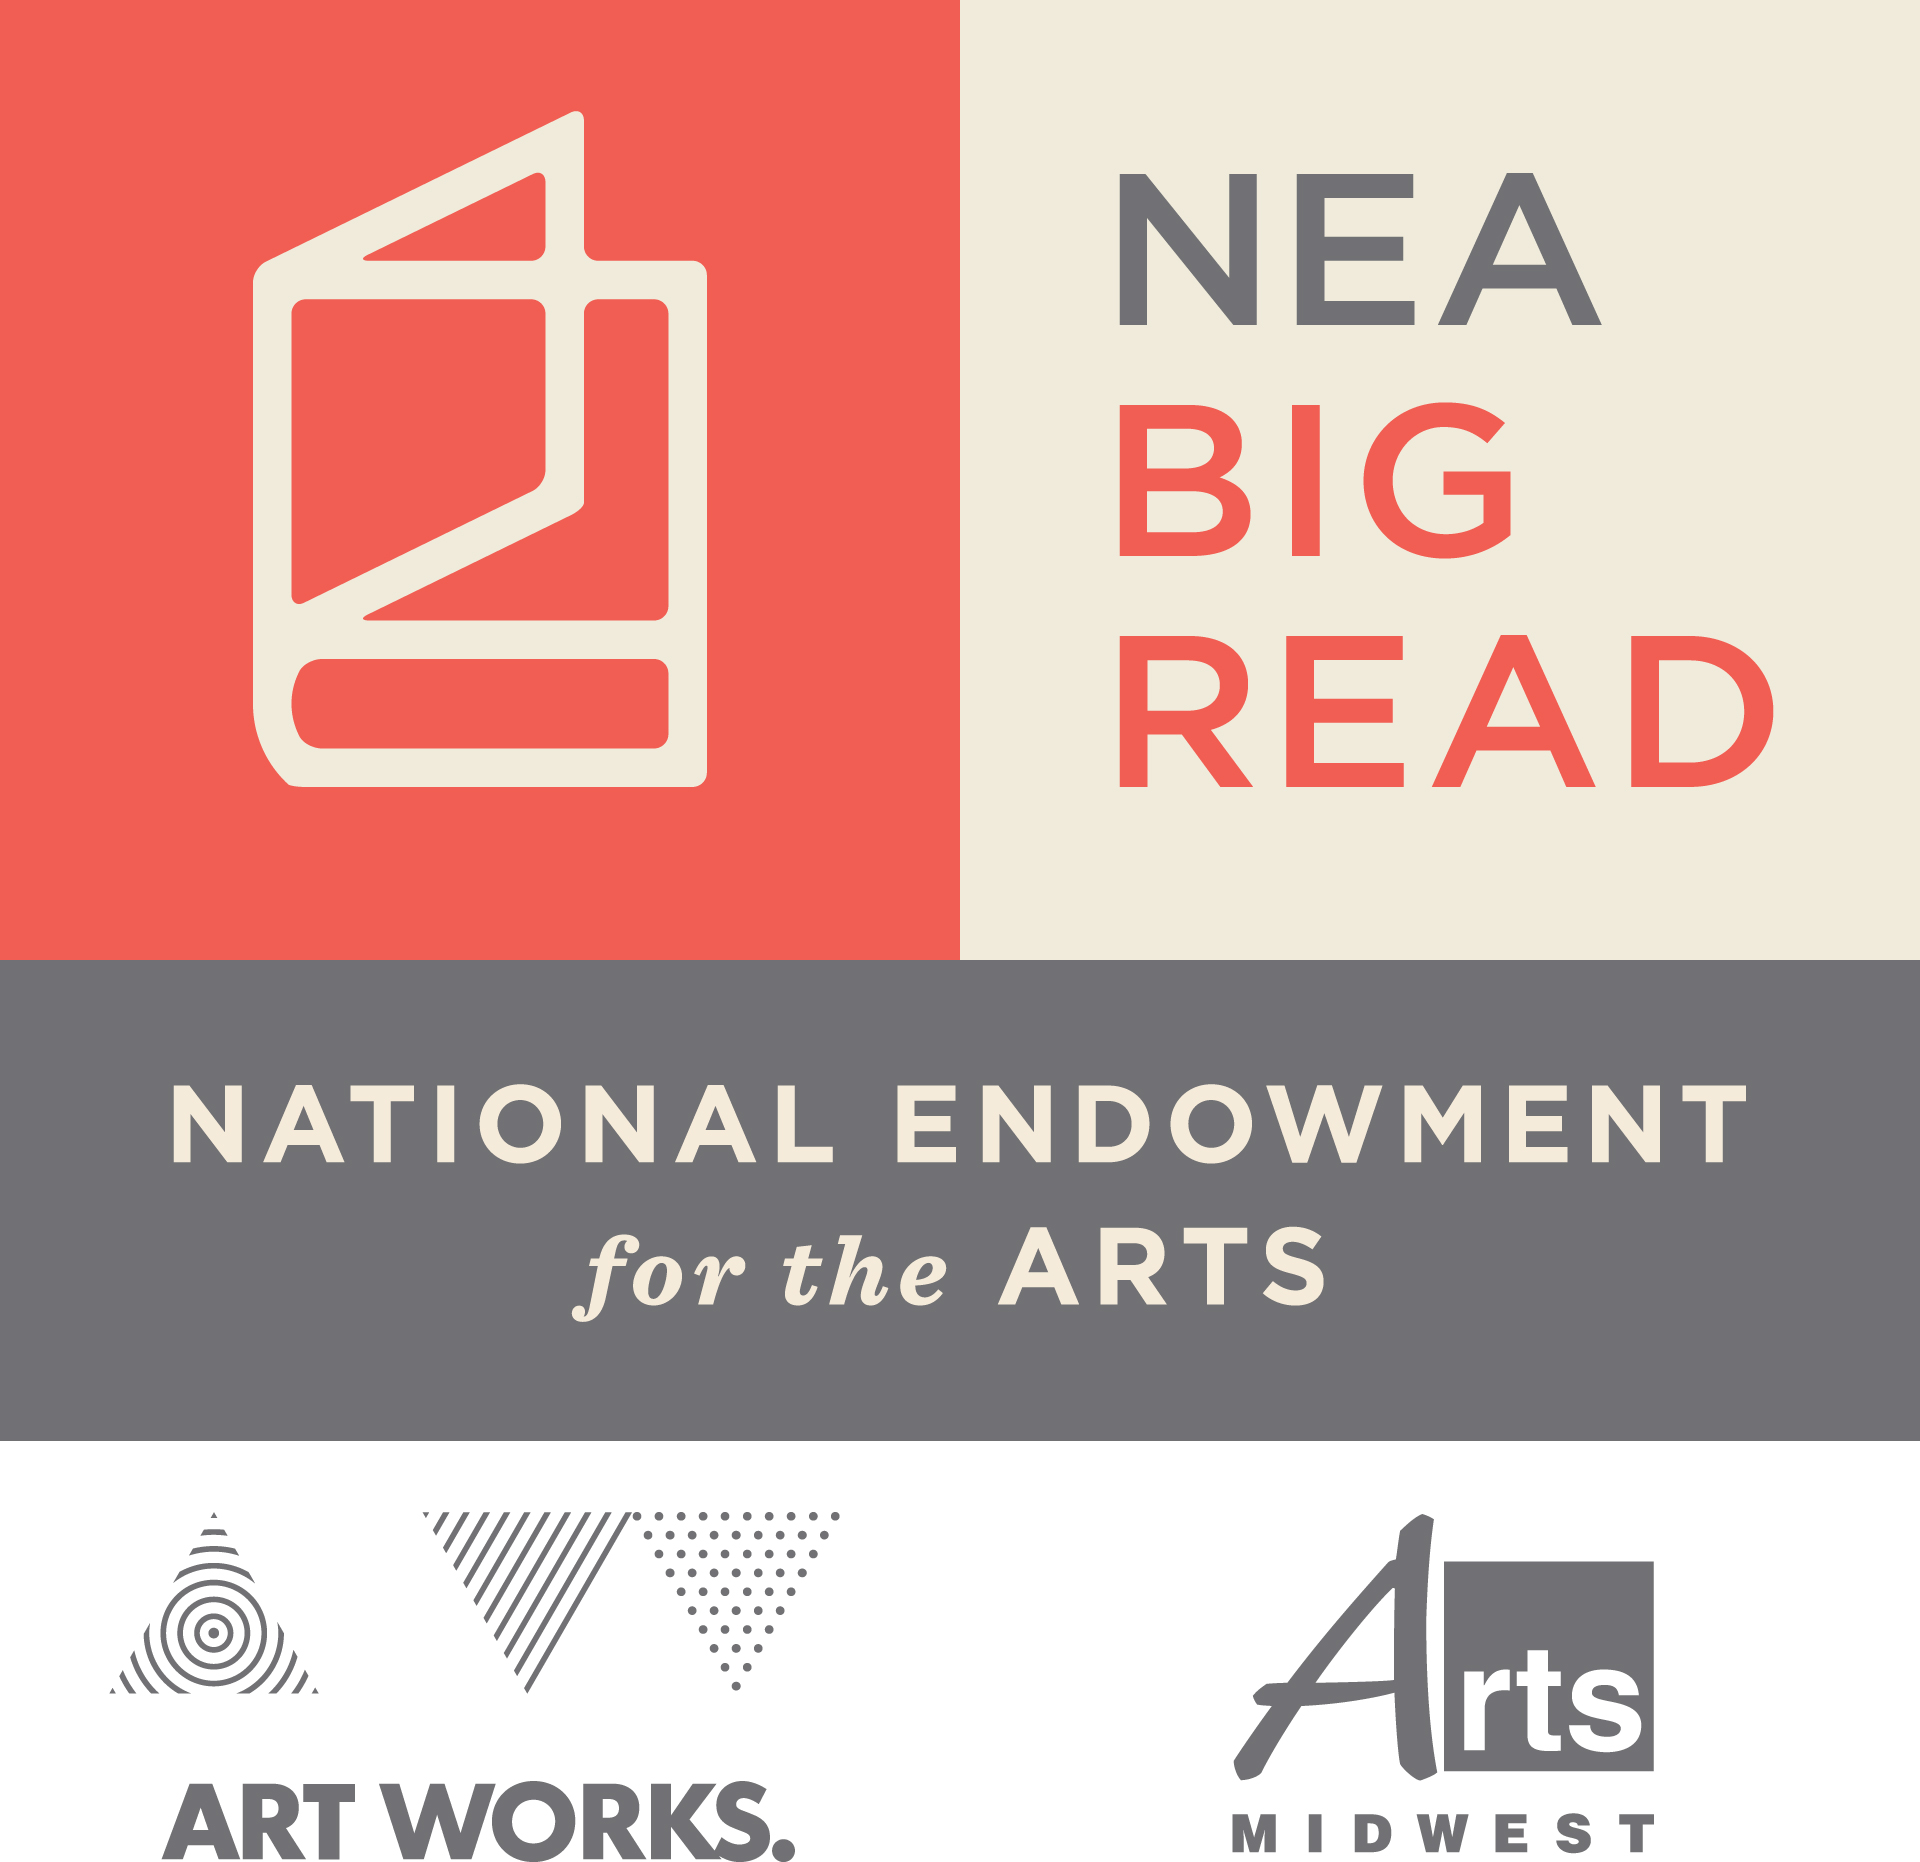 NEA Big Read - NEA Big Read is a program of the National Endowment for the Arts (NEA) designed to broaden our understanding of our world, our communities, and ourselves through the joy of sharing a good book. Hartford Public Library is one of 77 not-for-profit organizations to receive a grant to host an NEA Big Read project between September 2016 and June 2017. The NEA presents NEA Big Read in partnership with Arts Midwest.Congratulations to TNMOT AZTRO PERFORMANCE ART AND DANCE INSTALLATION LLC for completing a commissioned Installation for the Hartford Public Library